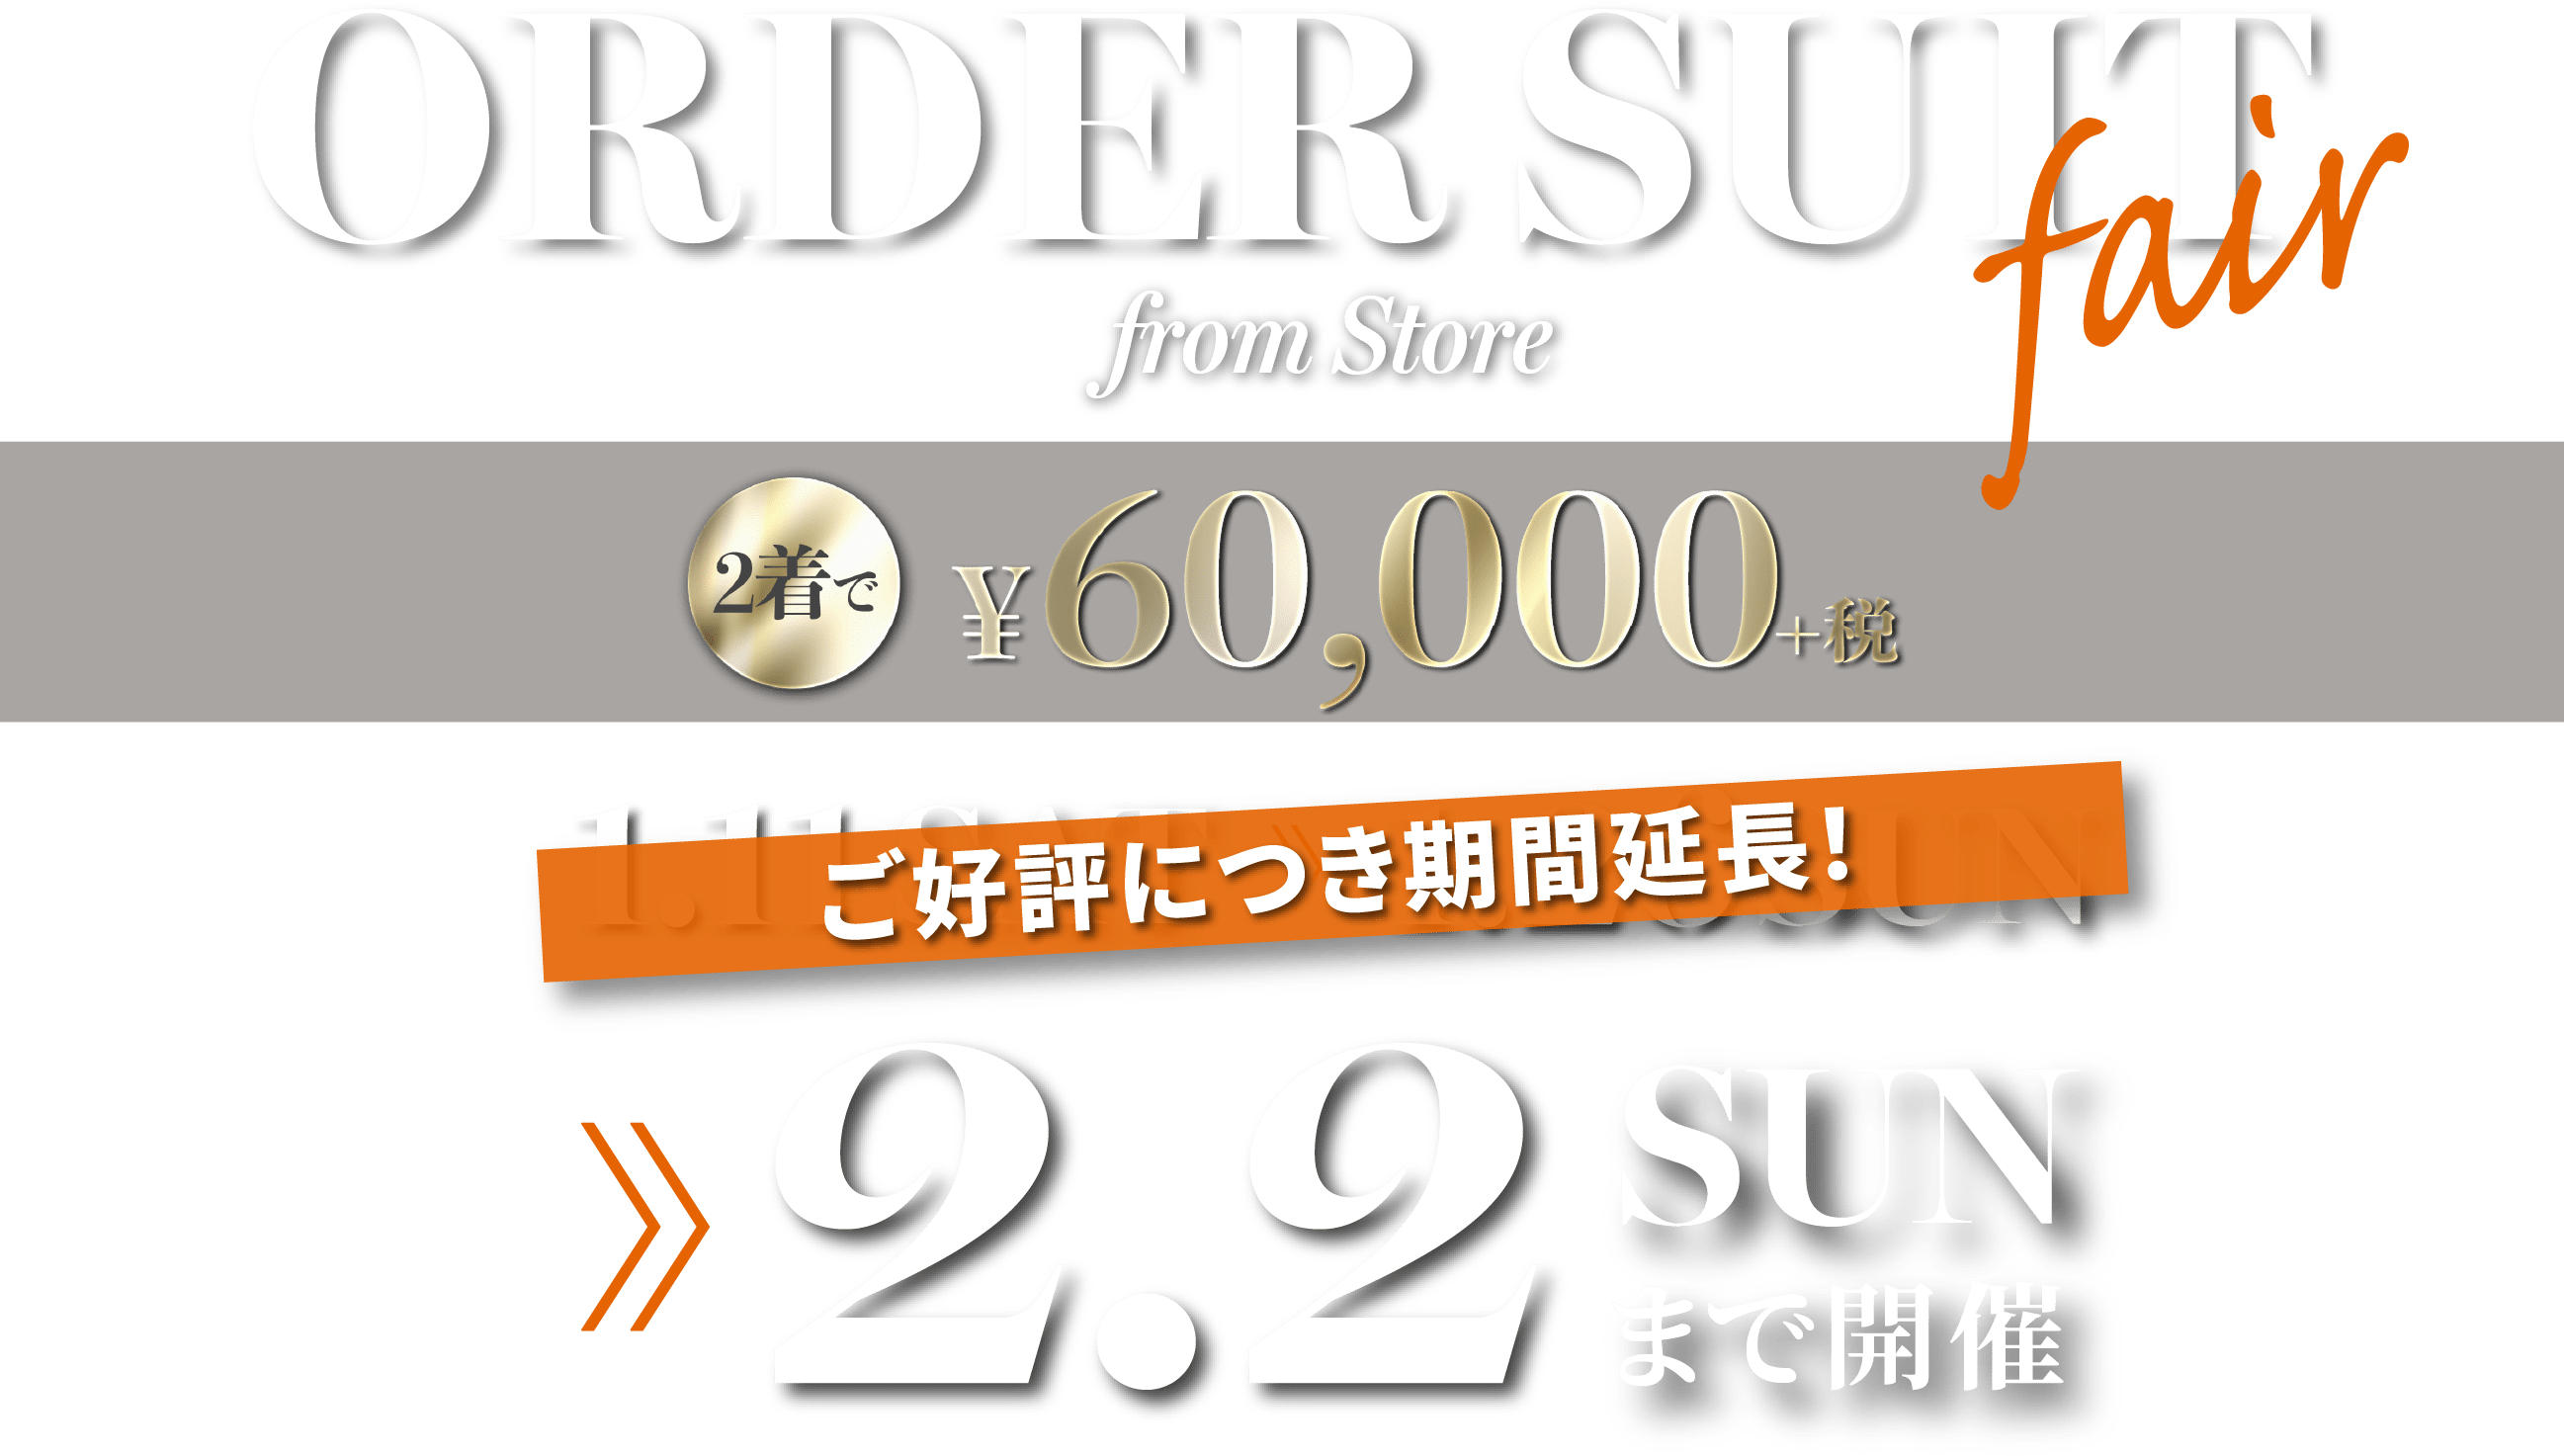 ORDER SUIT fair from Store